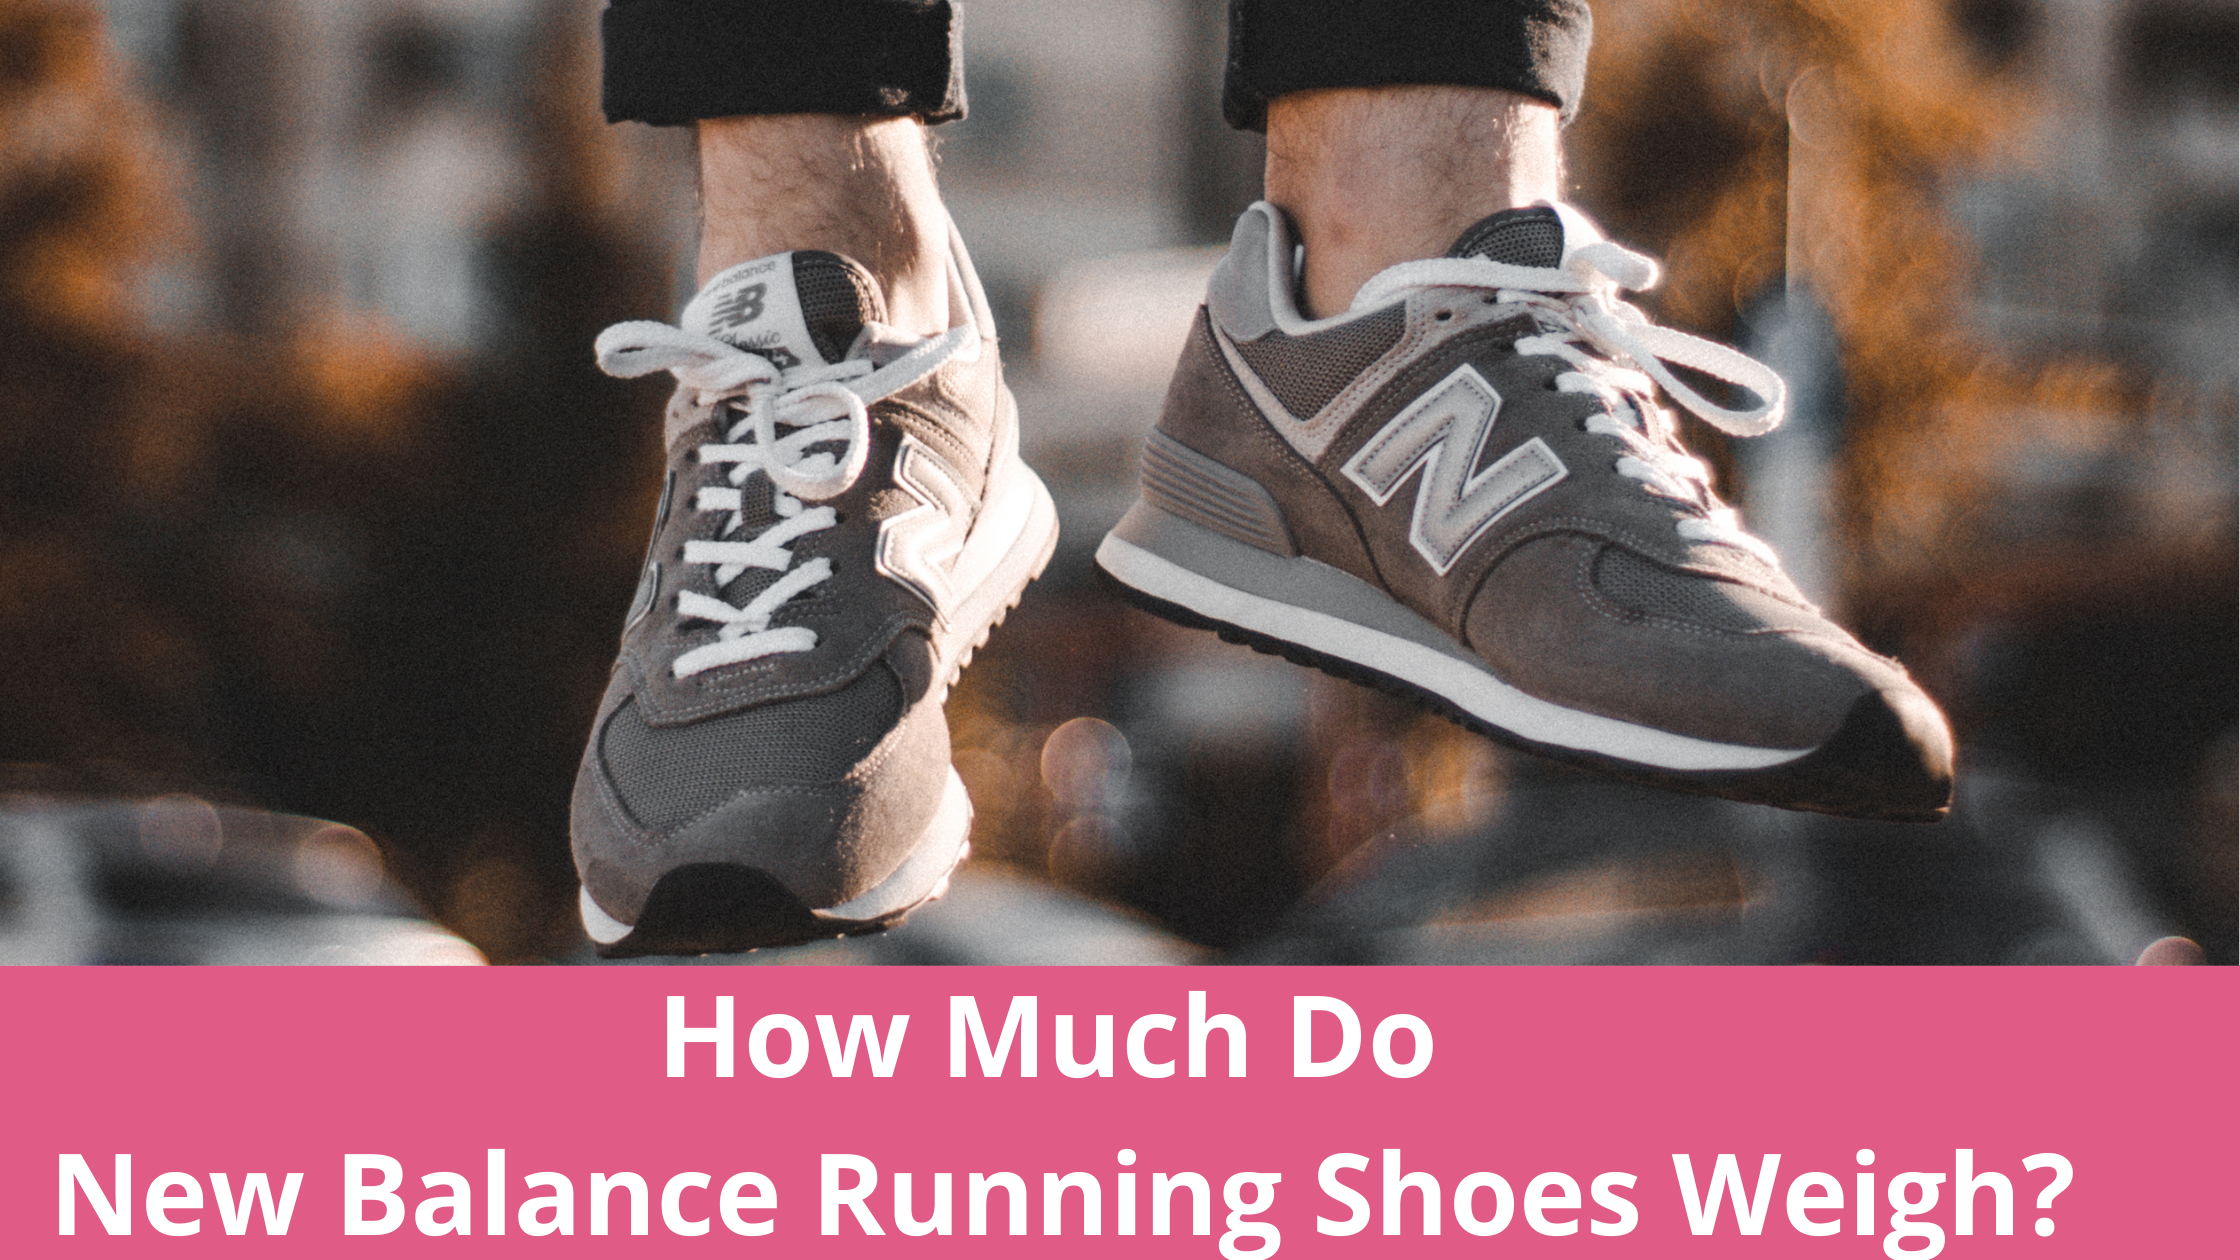 The average weight of a New Balance running shoe is 9.1 ounces in men's and 7.7 ounces in women's. The heaviest New Balance running shoe is the Fresh Foam More and the lightest is the FuelCell Rebel.